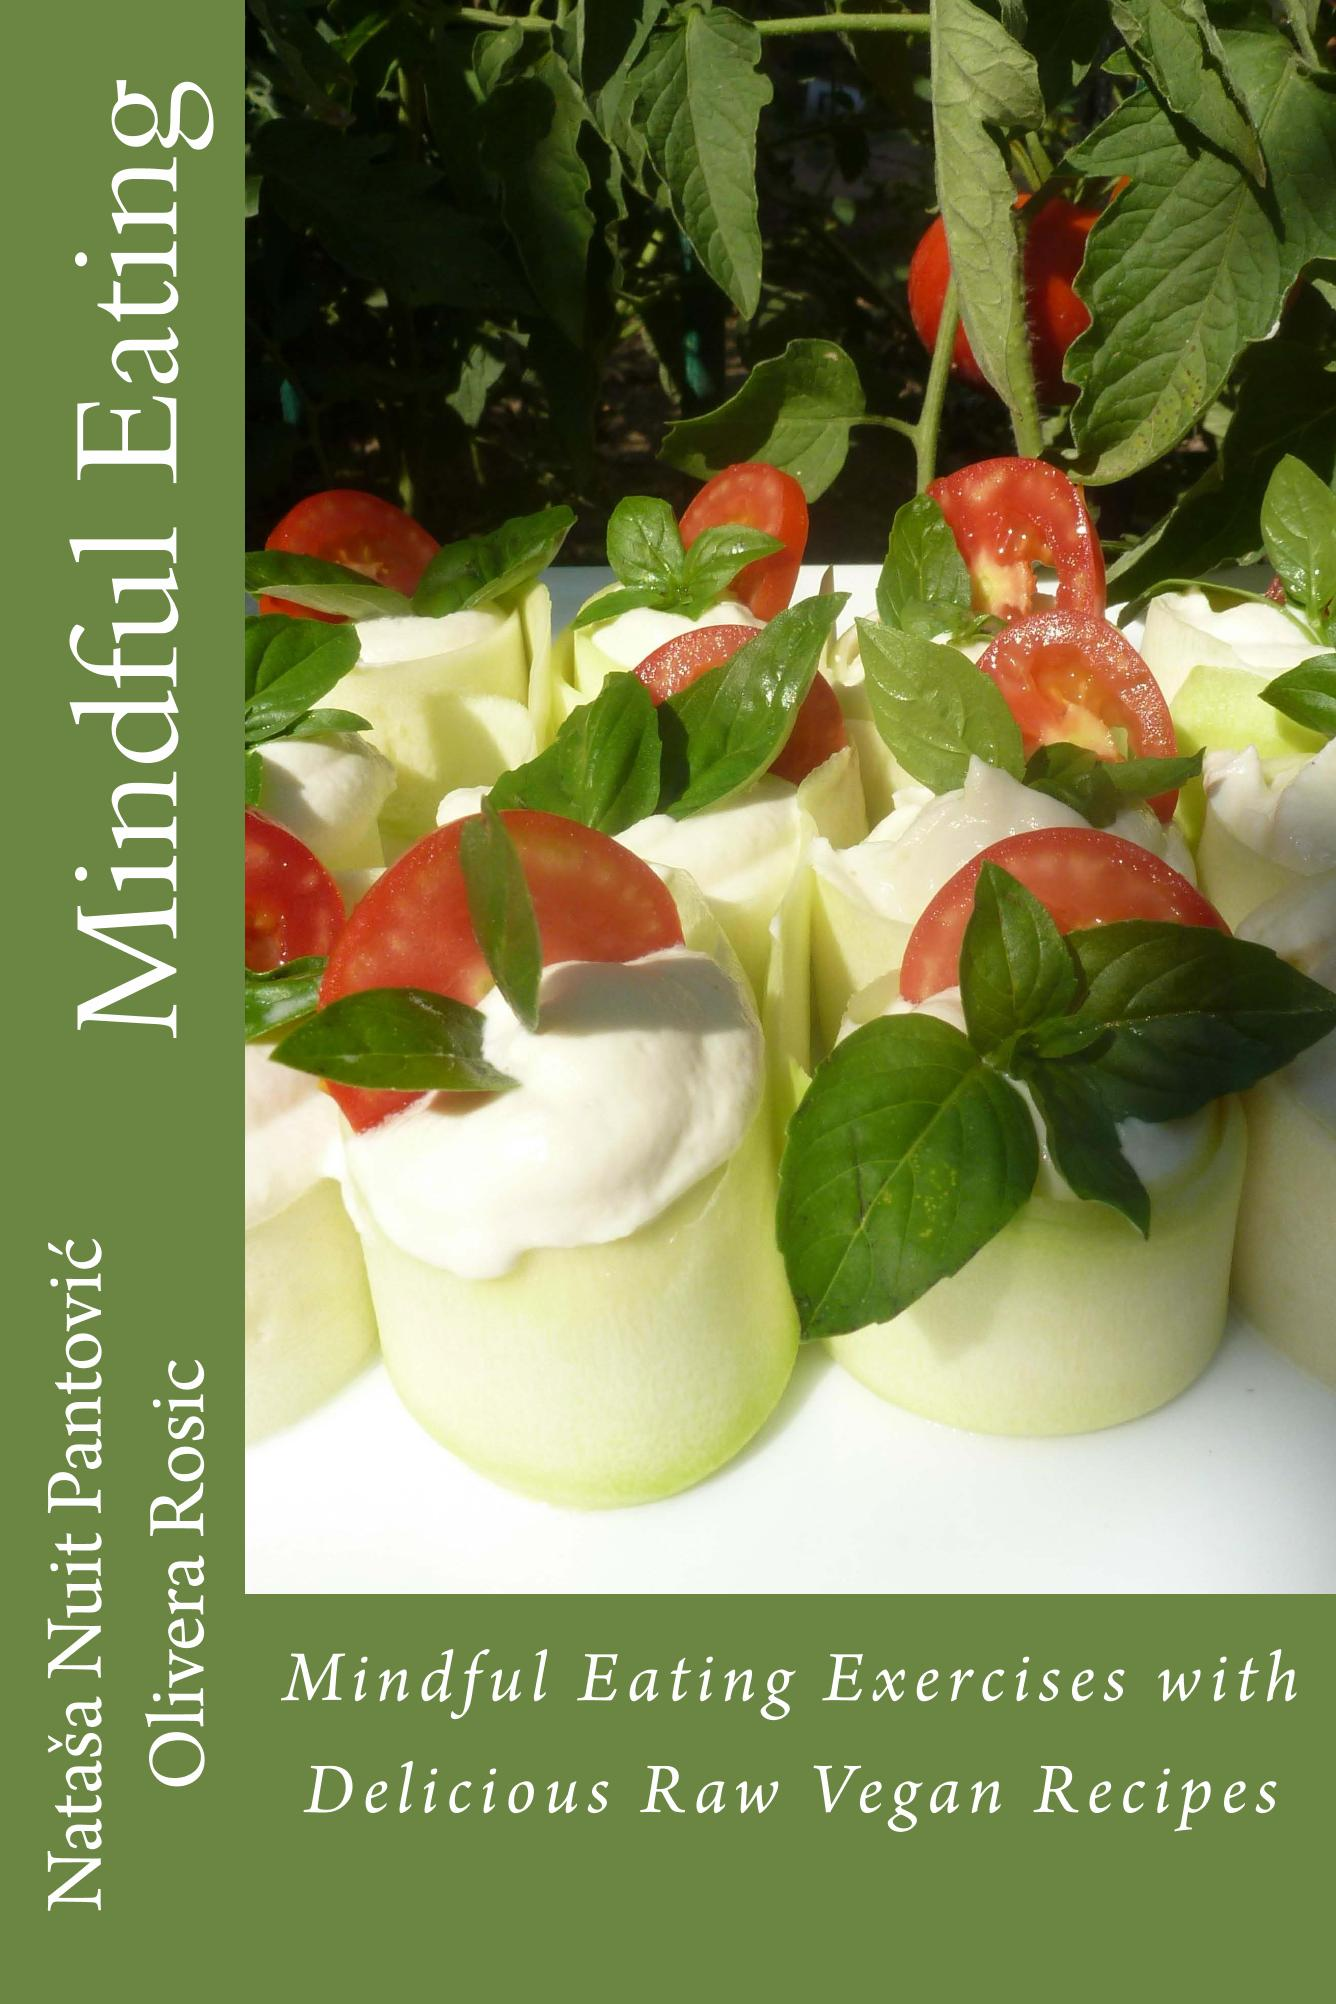 Mindful Eating Book by Natasa Pantovic and Olivera Rosic